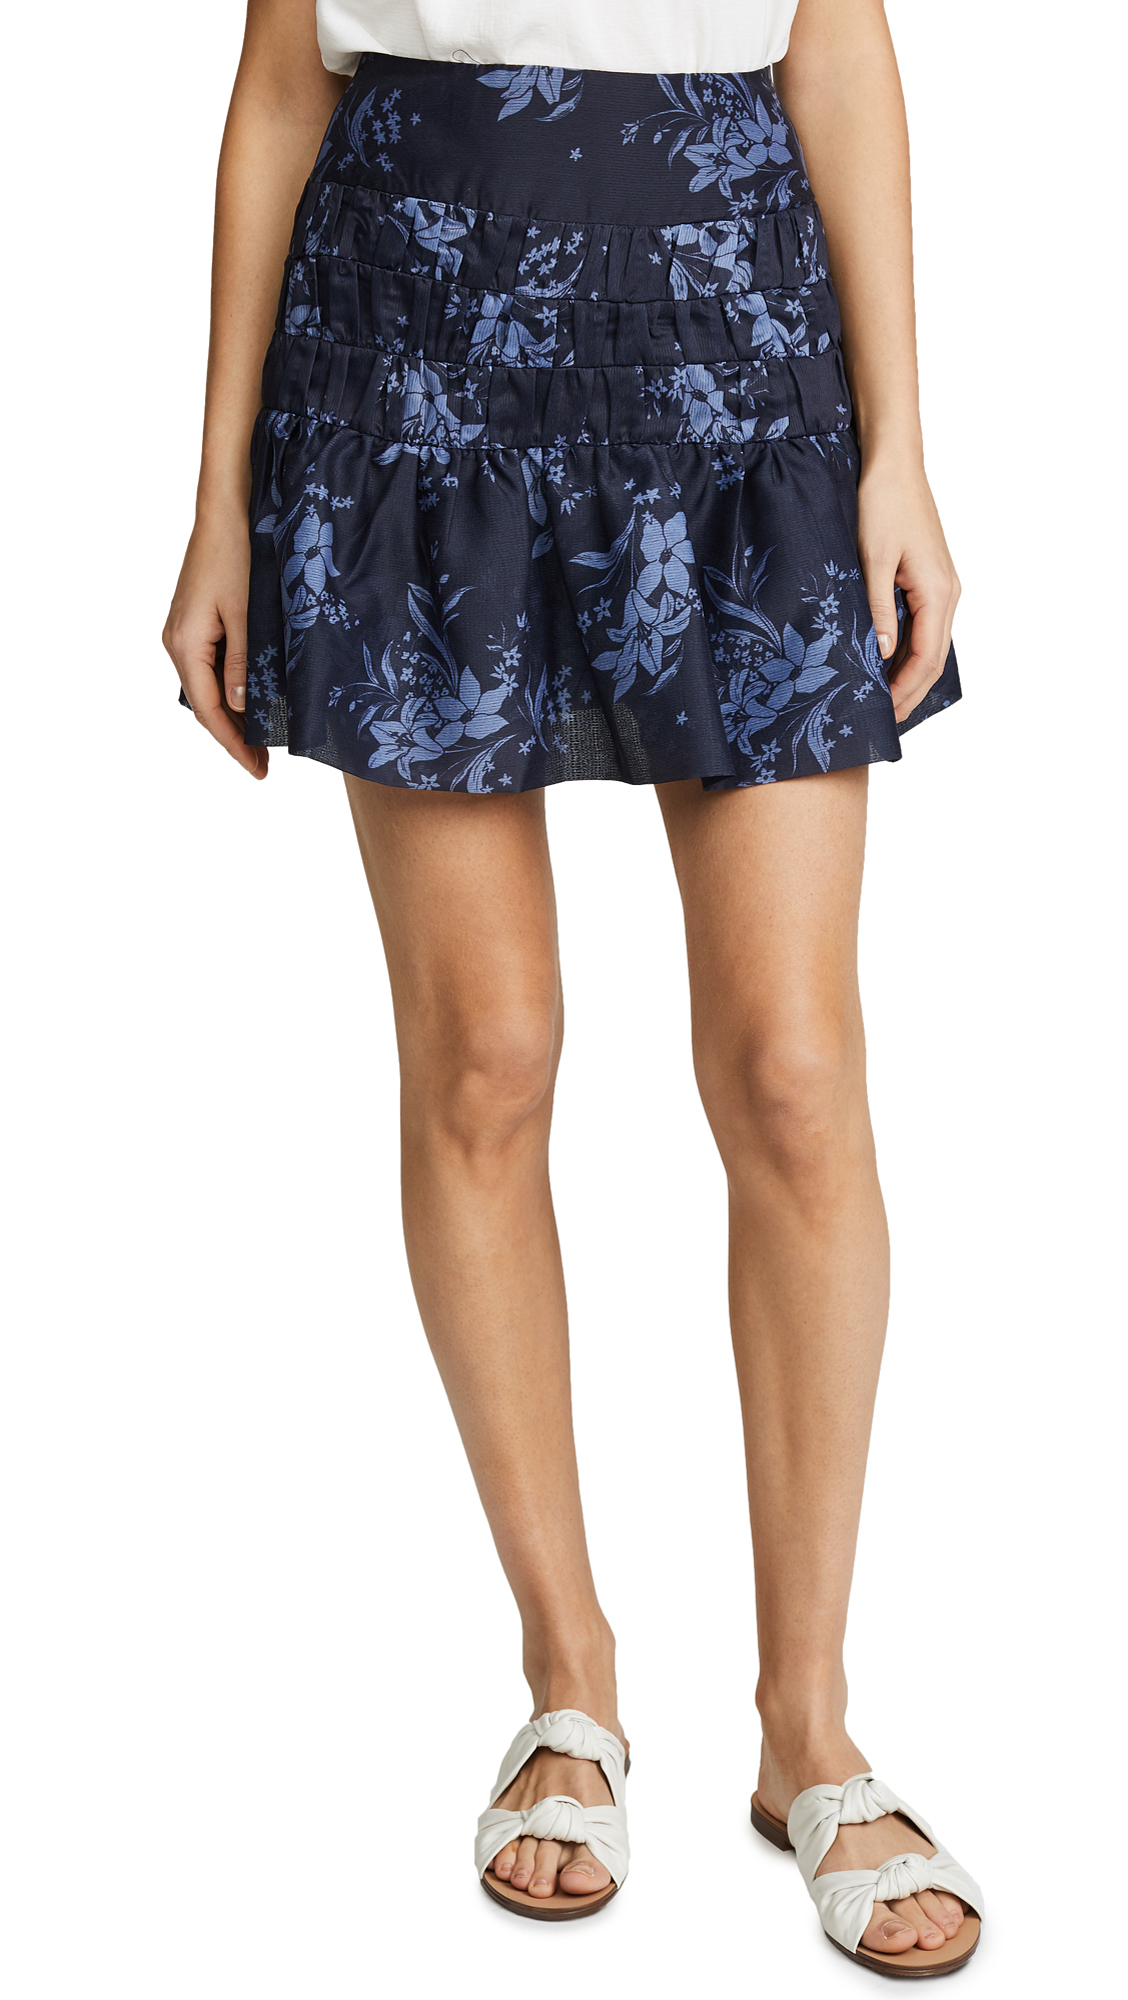 Keepsake Stand Tall Skirt In Navy Stencil Floral